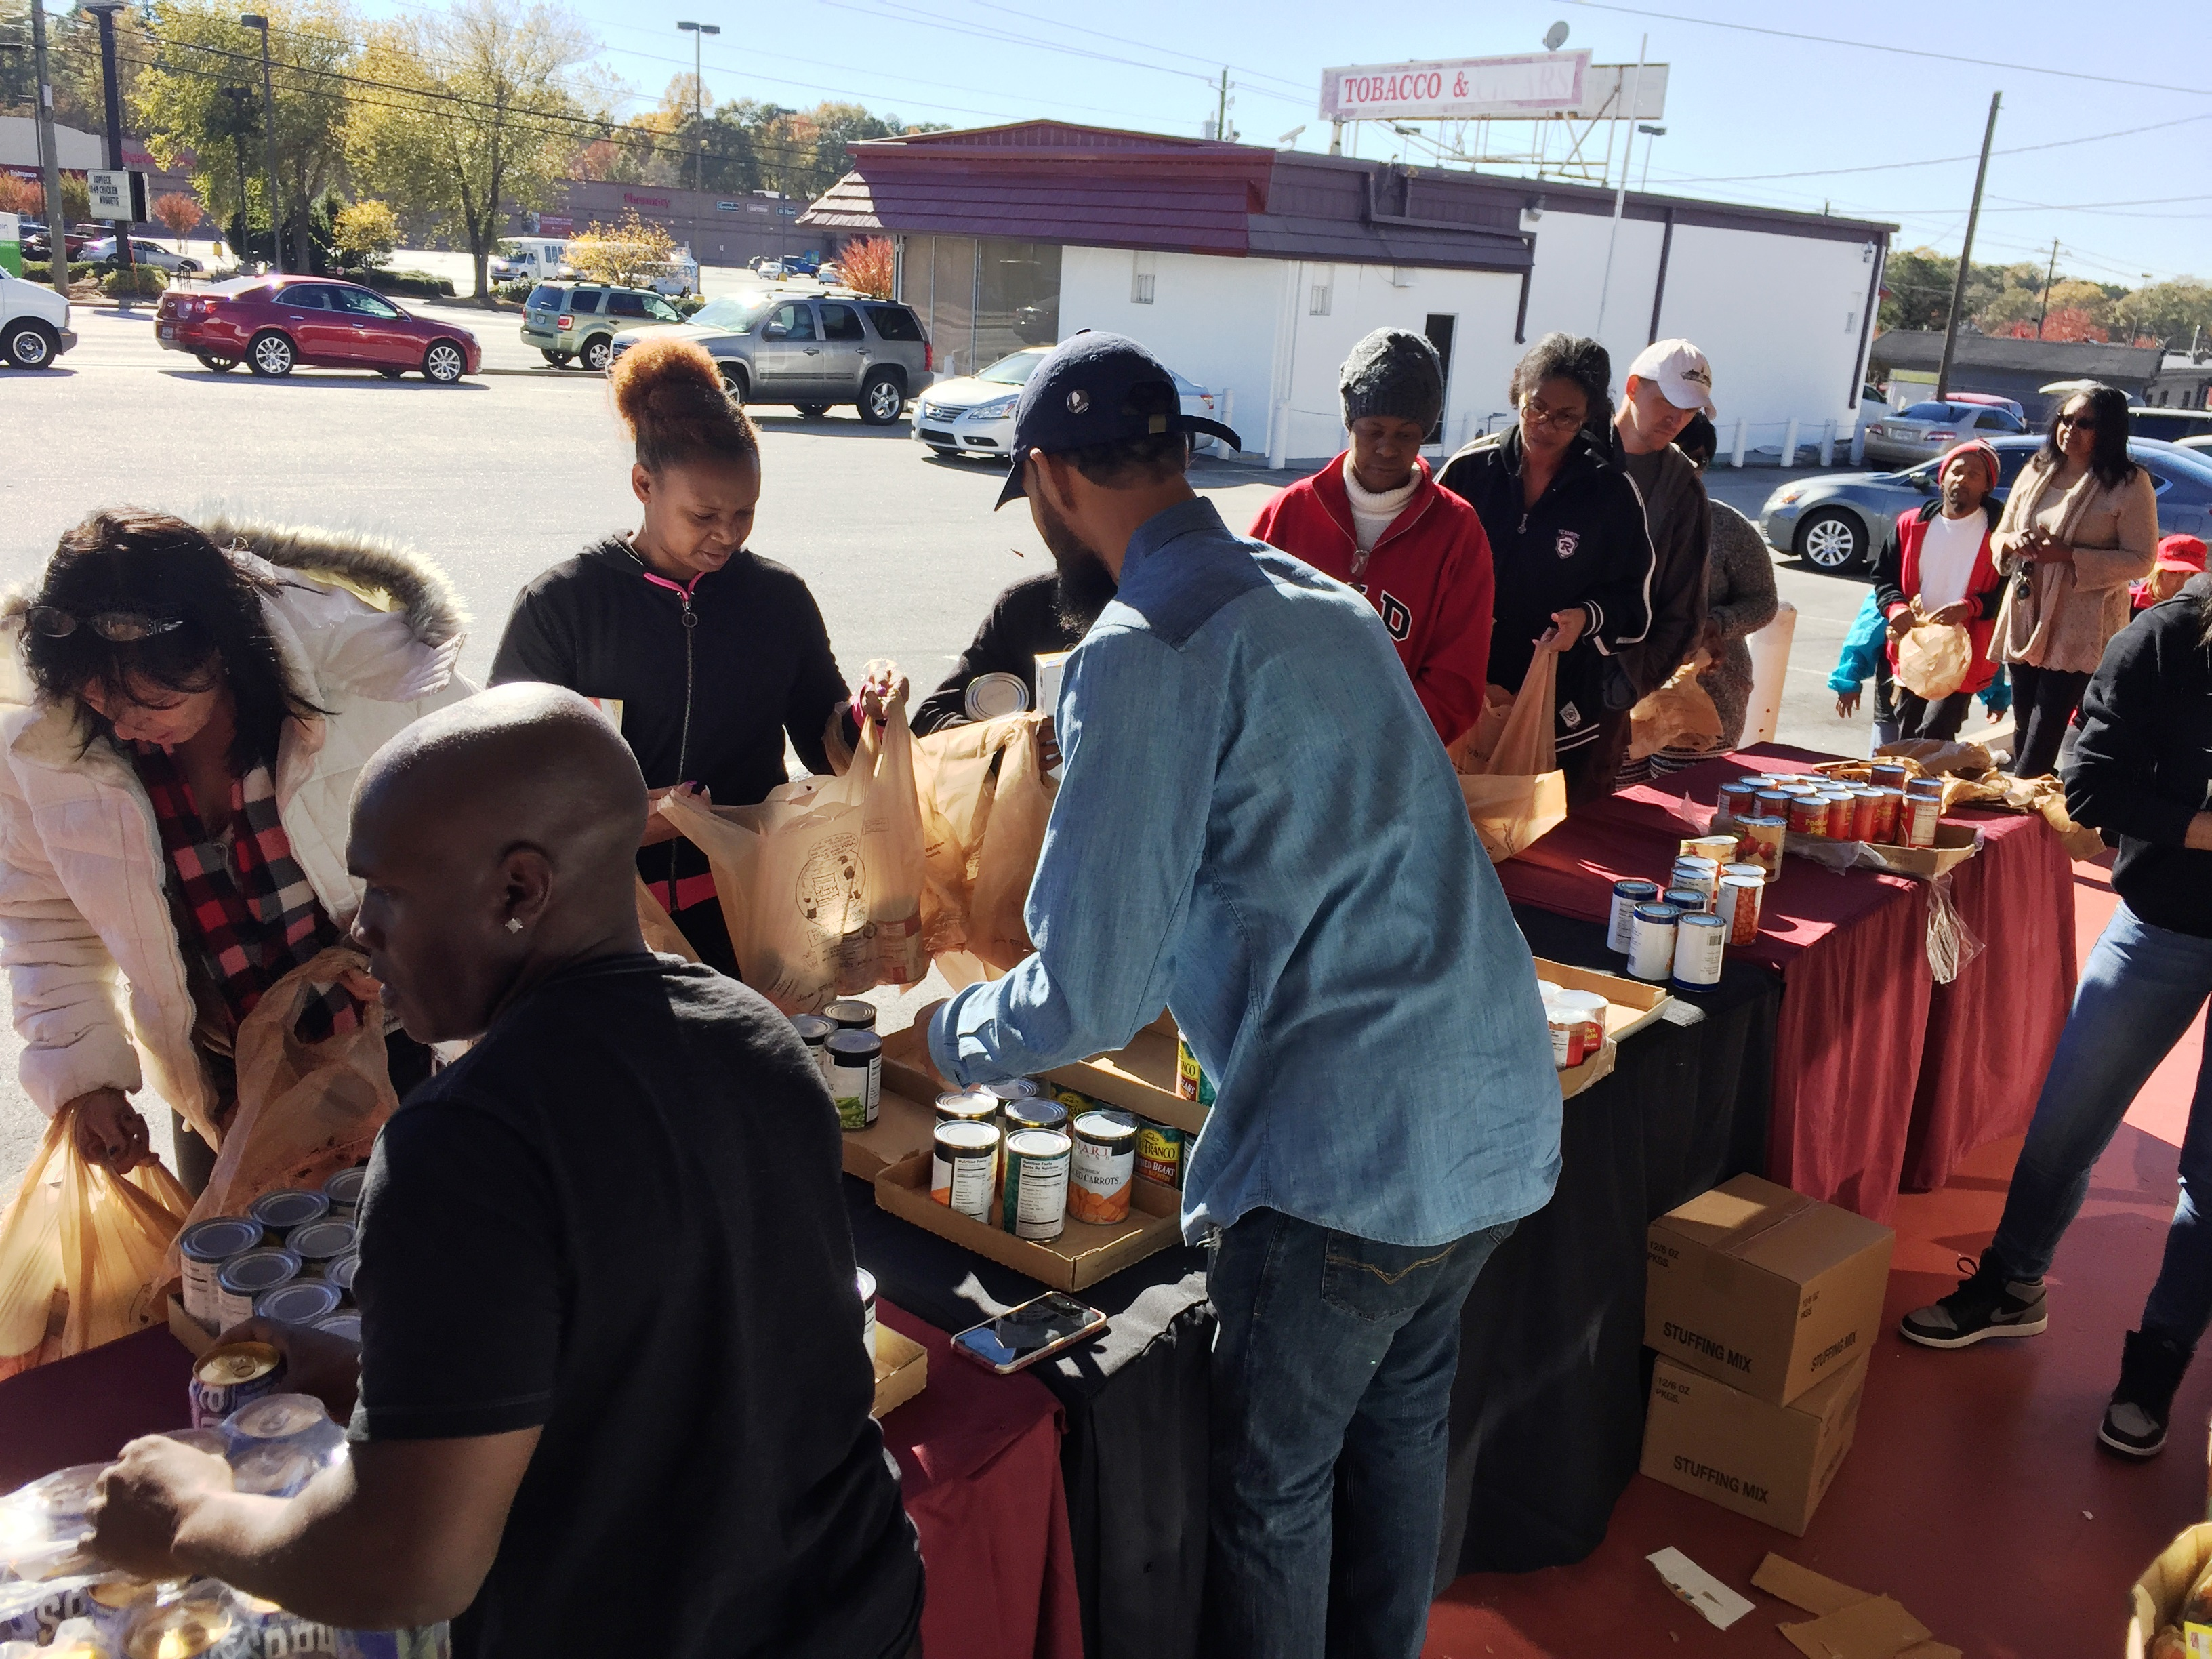 reec-host-grocery-give-away-payusa-11-20-19